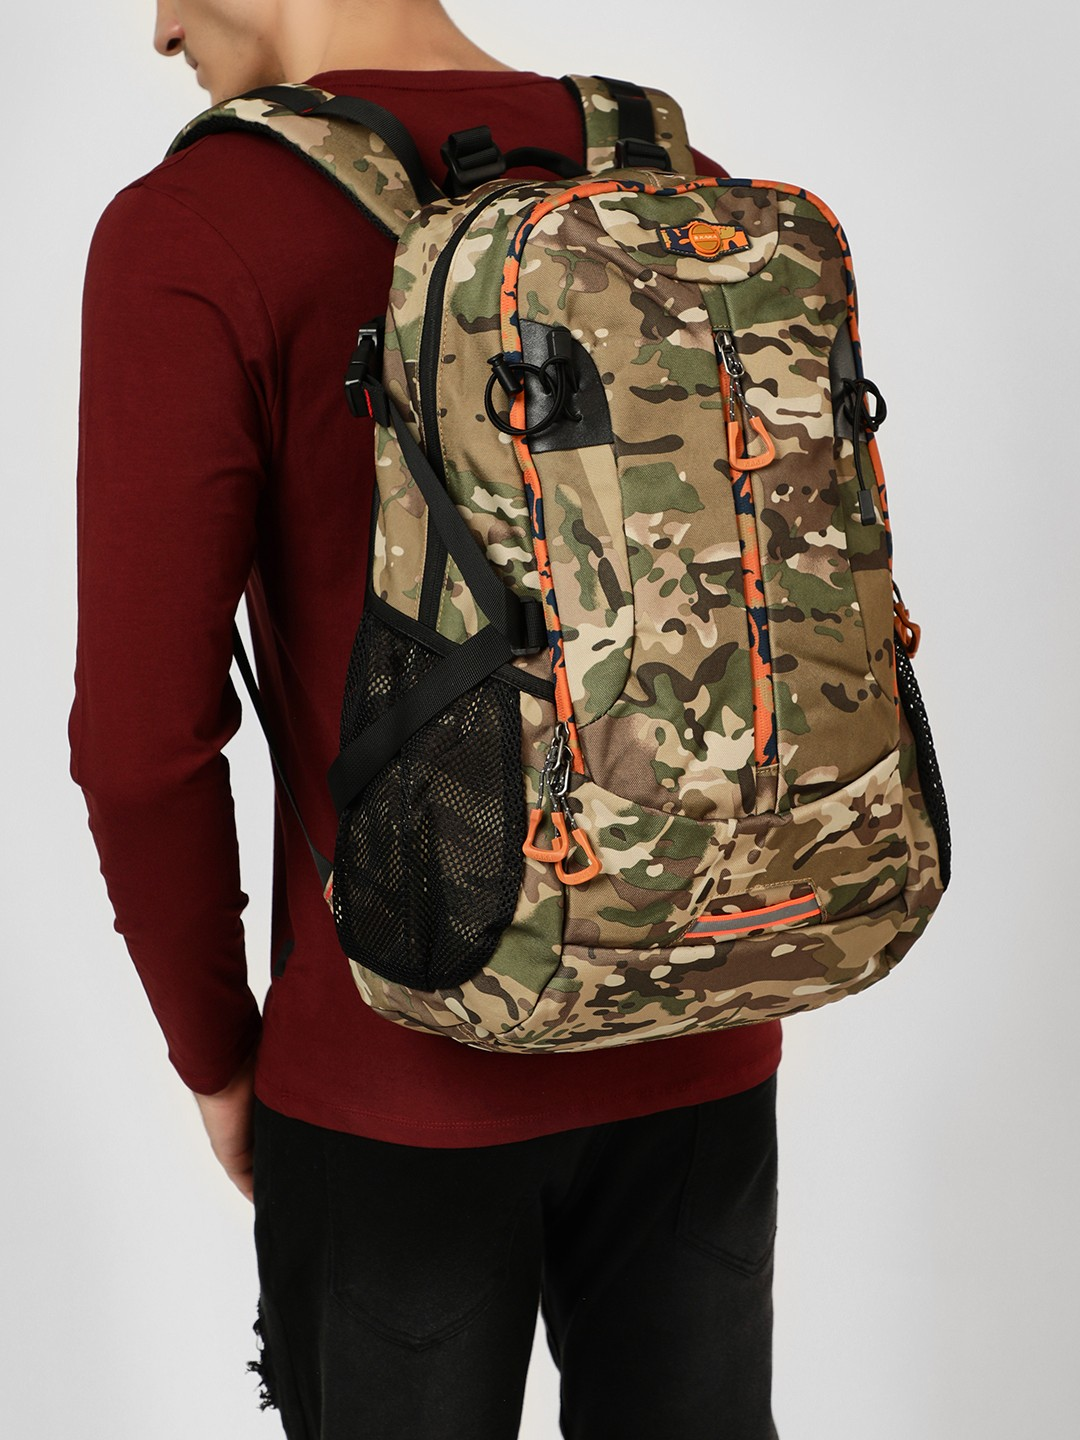 KAKA Multi Camo Print Oversized Sports Backpack 1